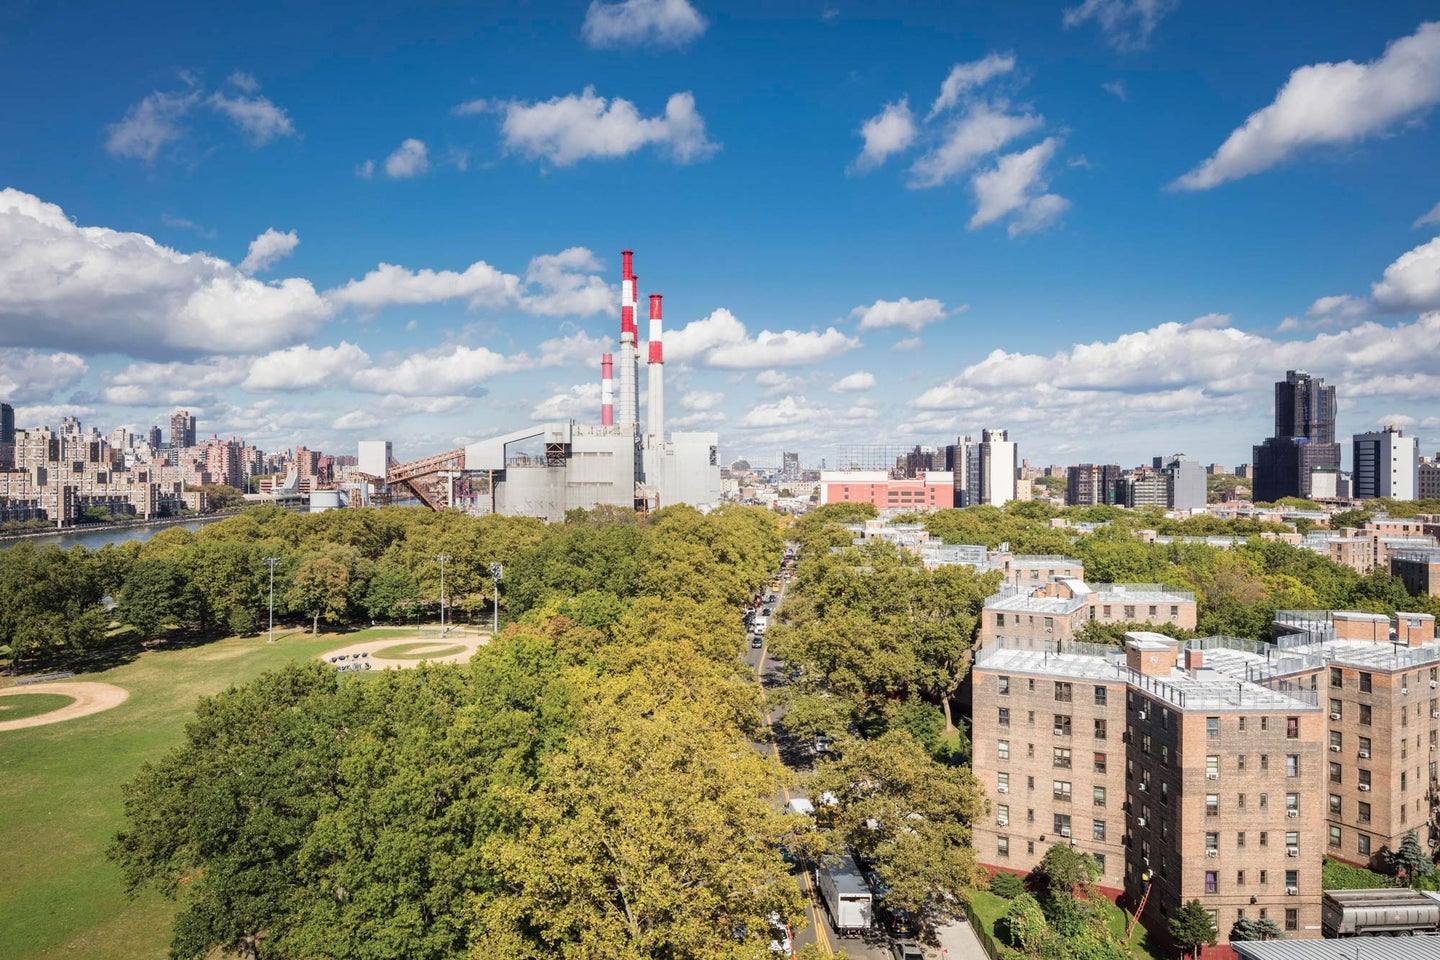 Nation's largest public housing project next to a power plant